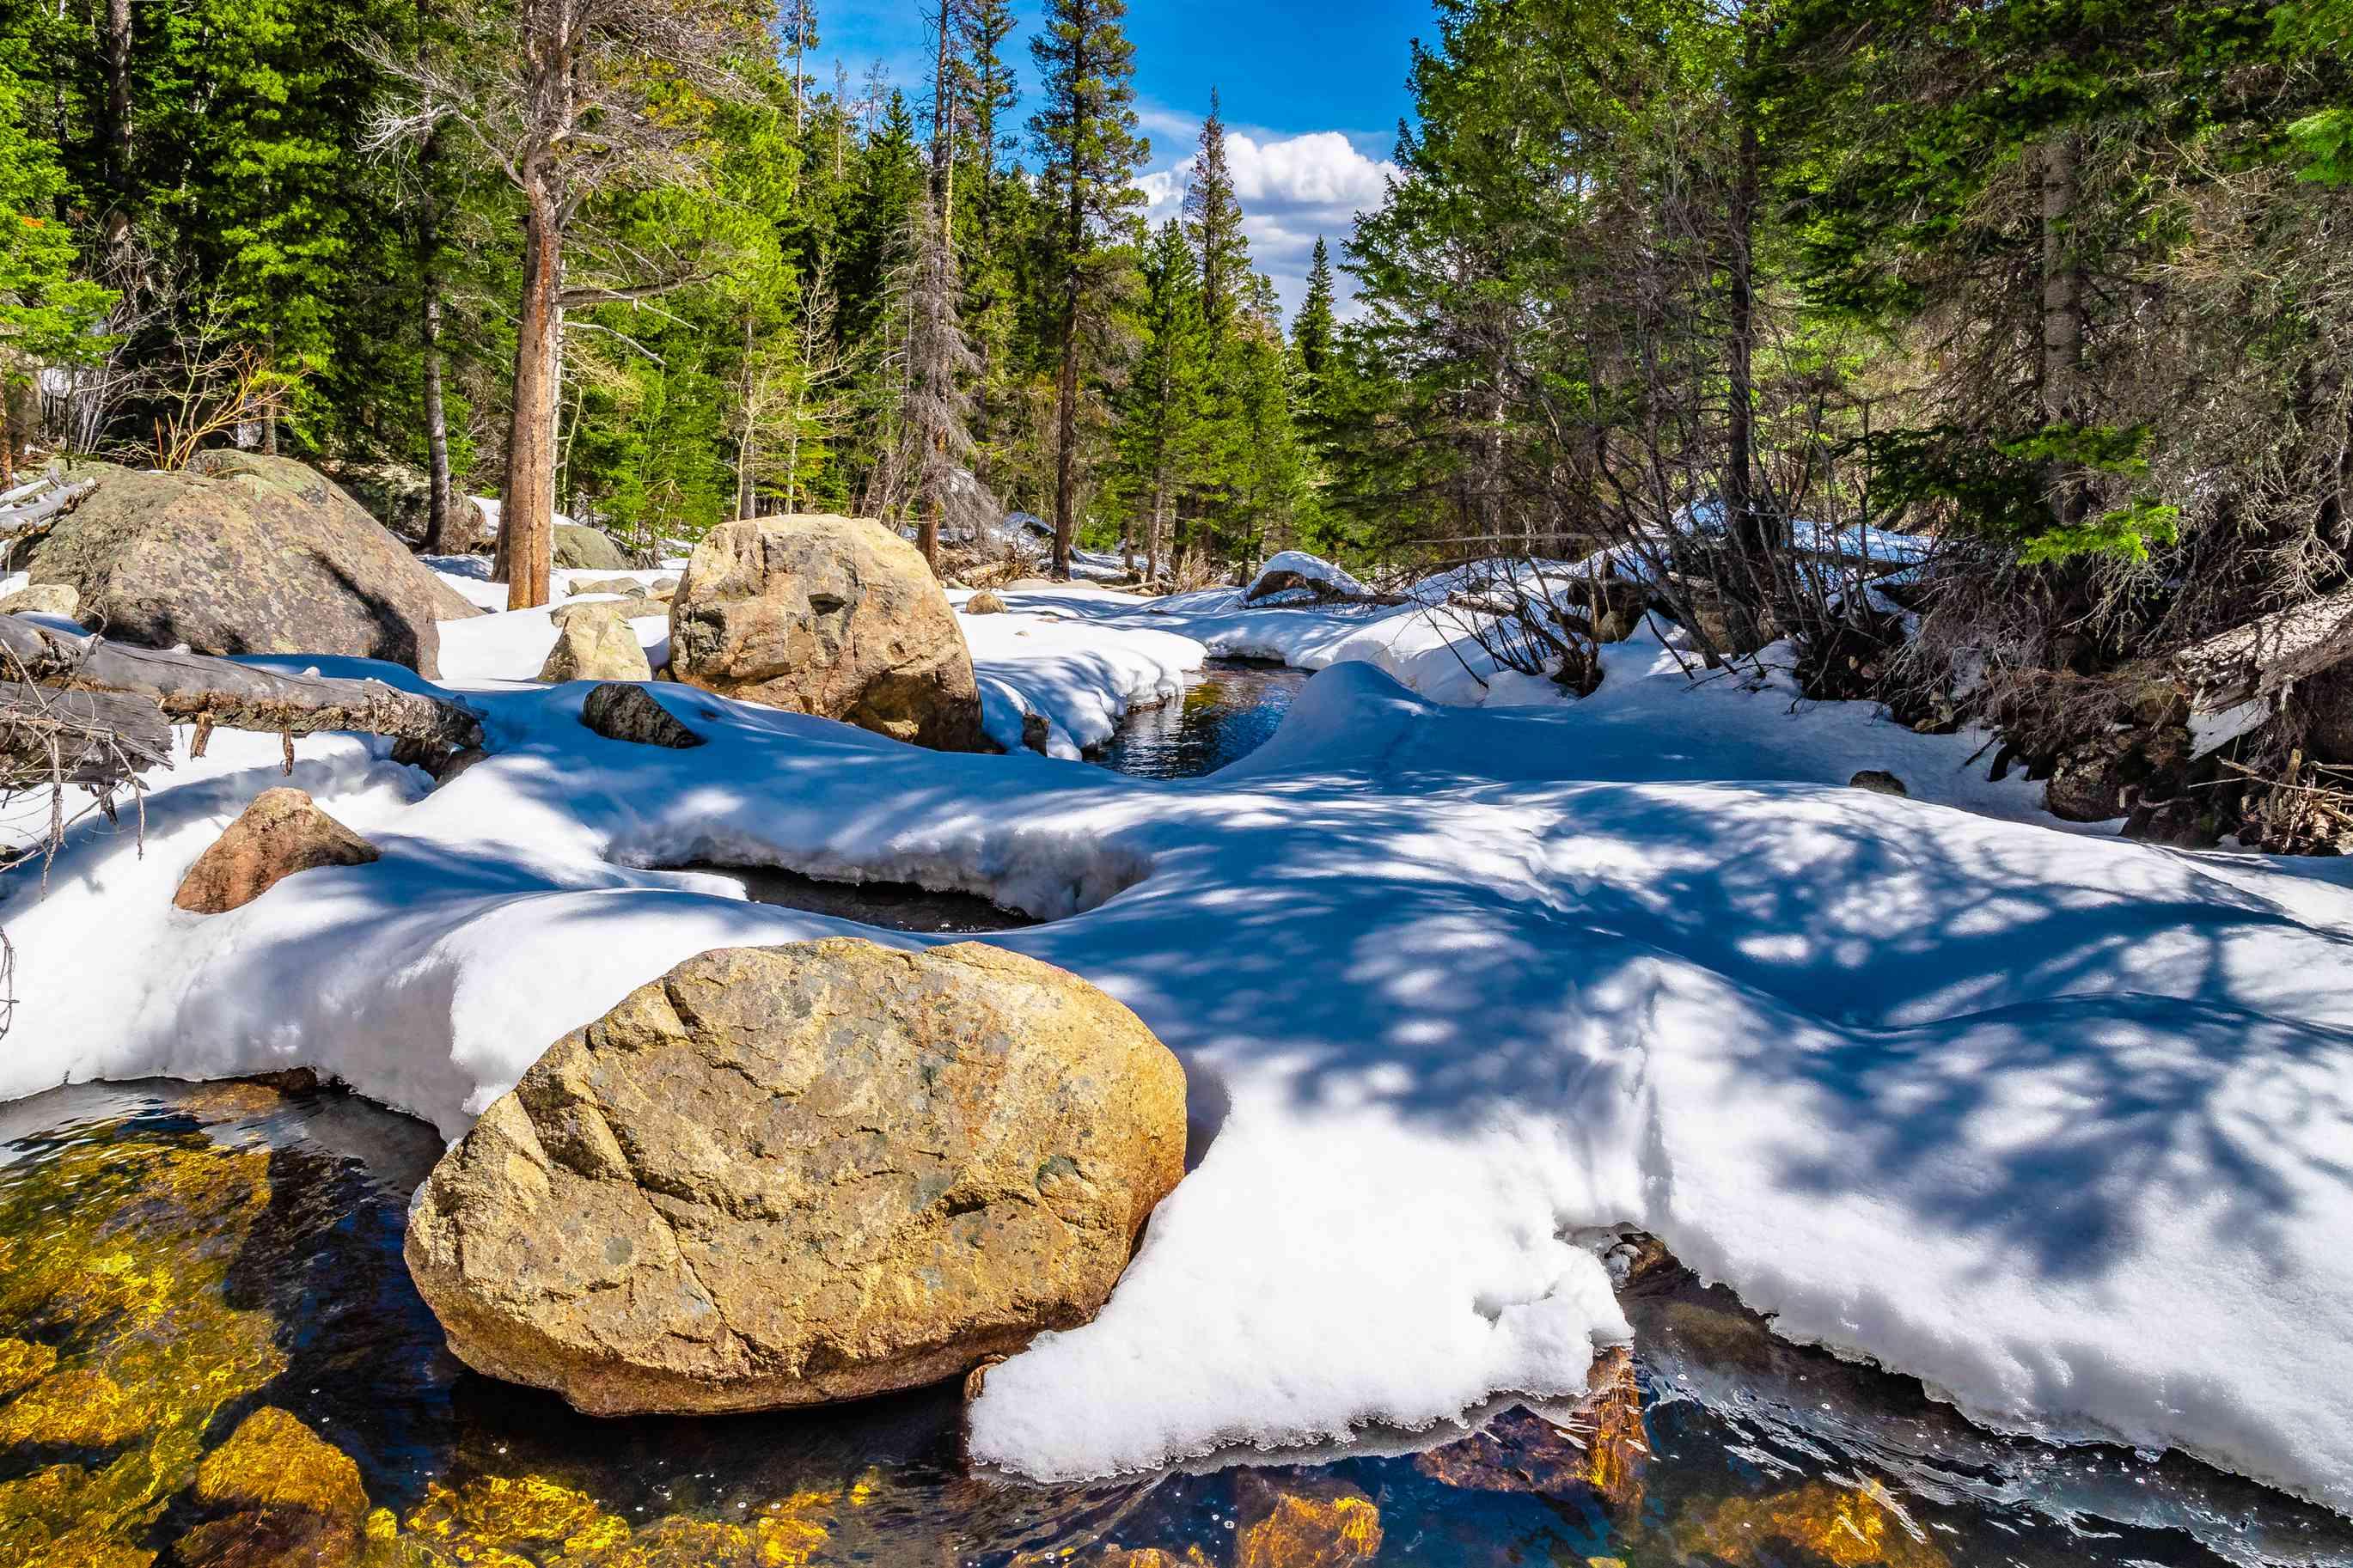 rock and snowy stream with evergreen trees on either side